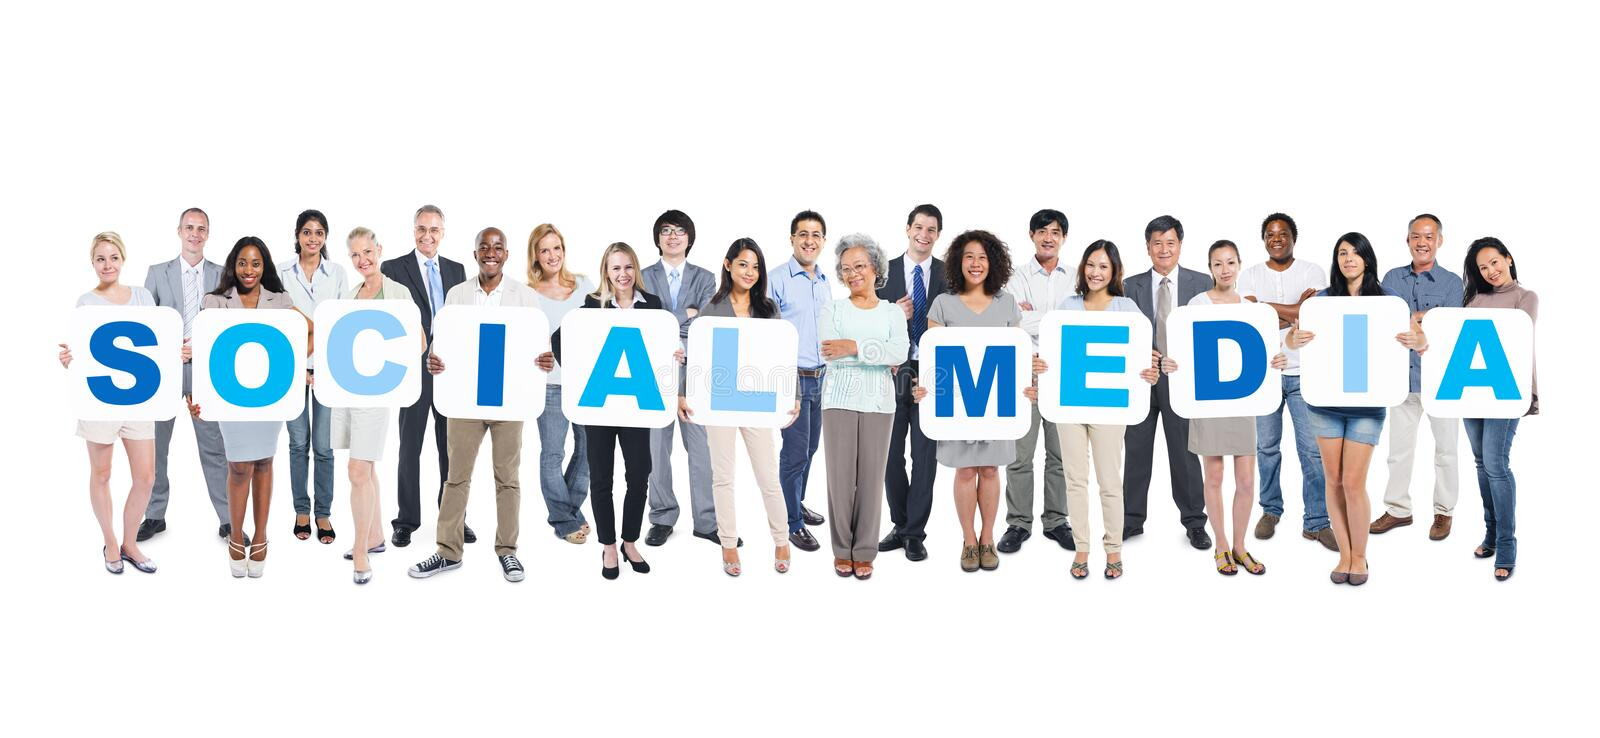 Group Of Multi-Ethnic Group Of Business People Holding Placards stock image